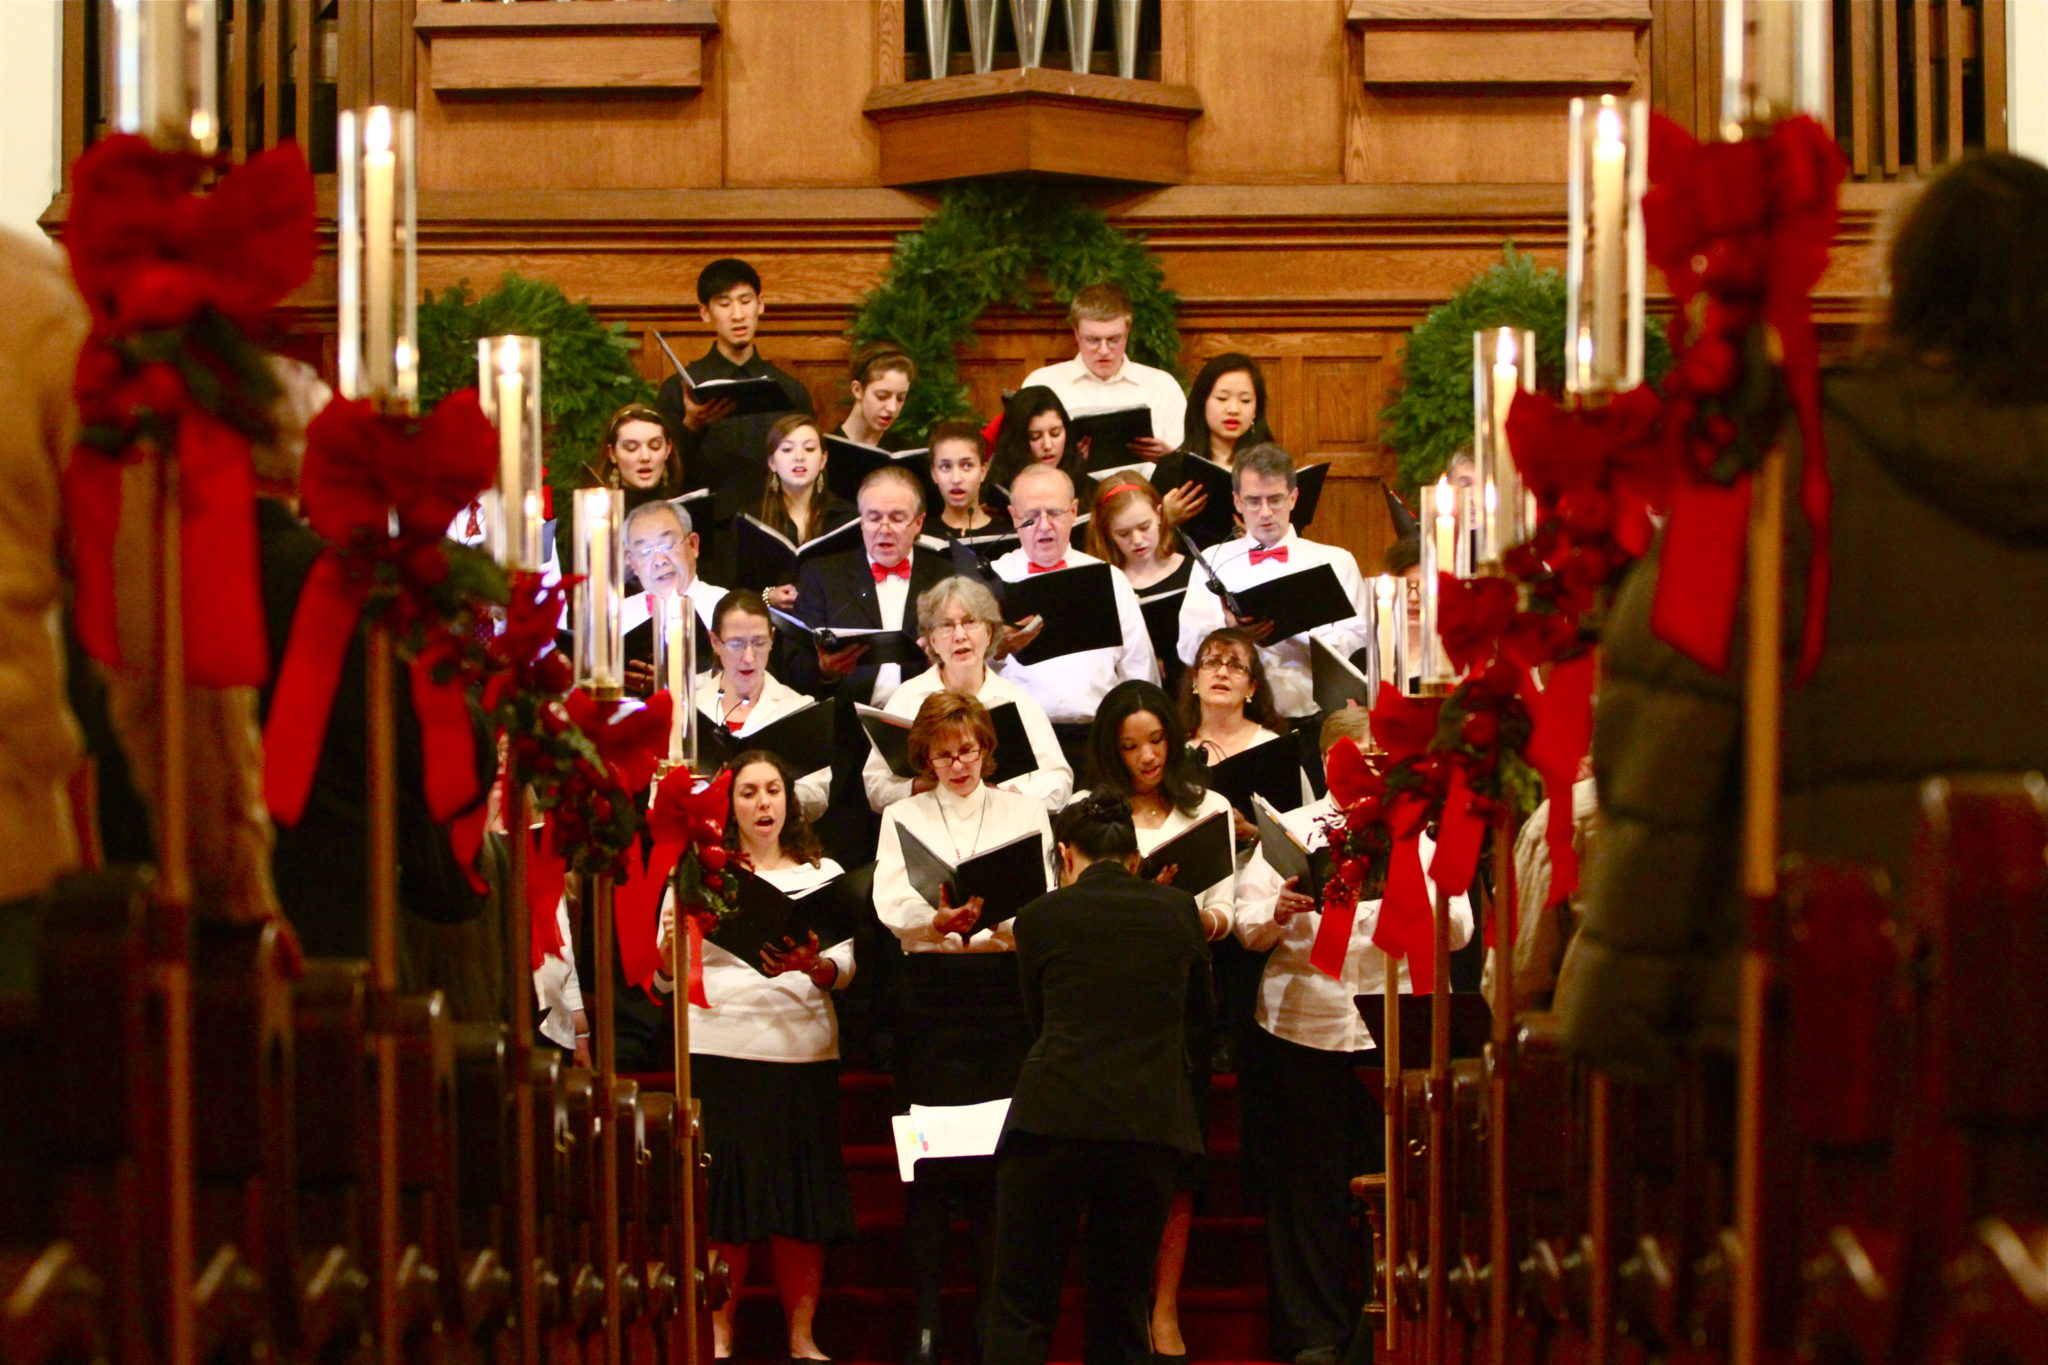 PUMC Chancel and High School Choirs